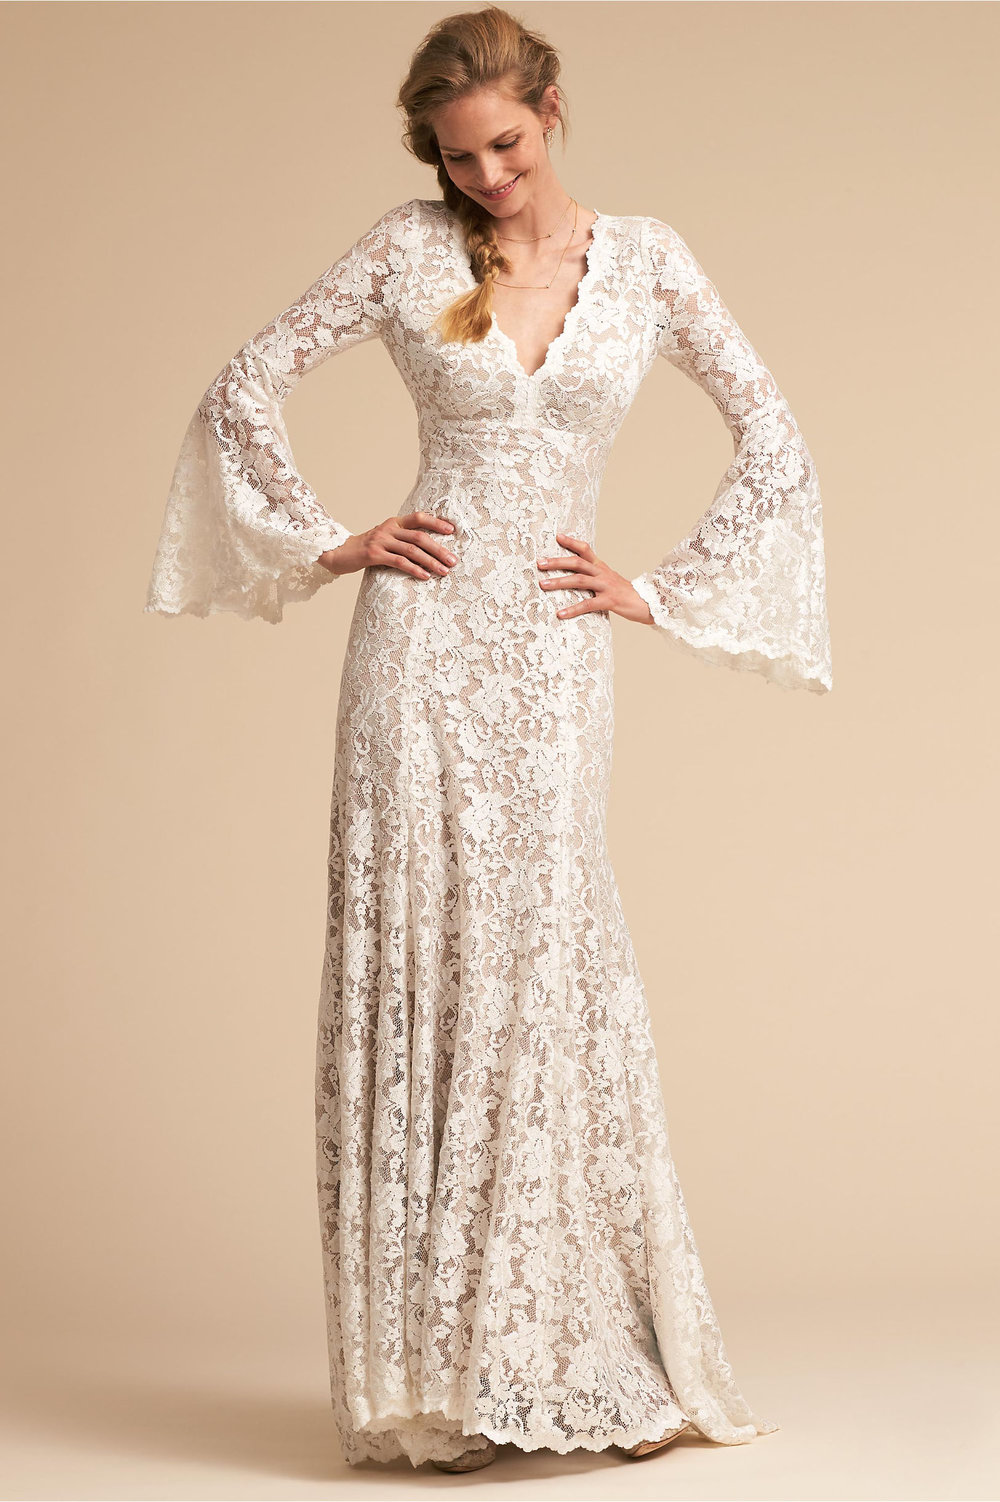 Lucca Gown - Seriously, BHLDN for the win! If you're a boho-bride, this dress would be a perfect (and completely stunning) option. Cut from intricate floral lace, this dress has an insane back cutout that will give your guests something pretty to look at while you're saying